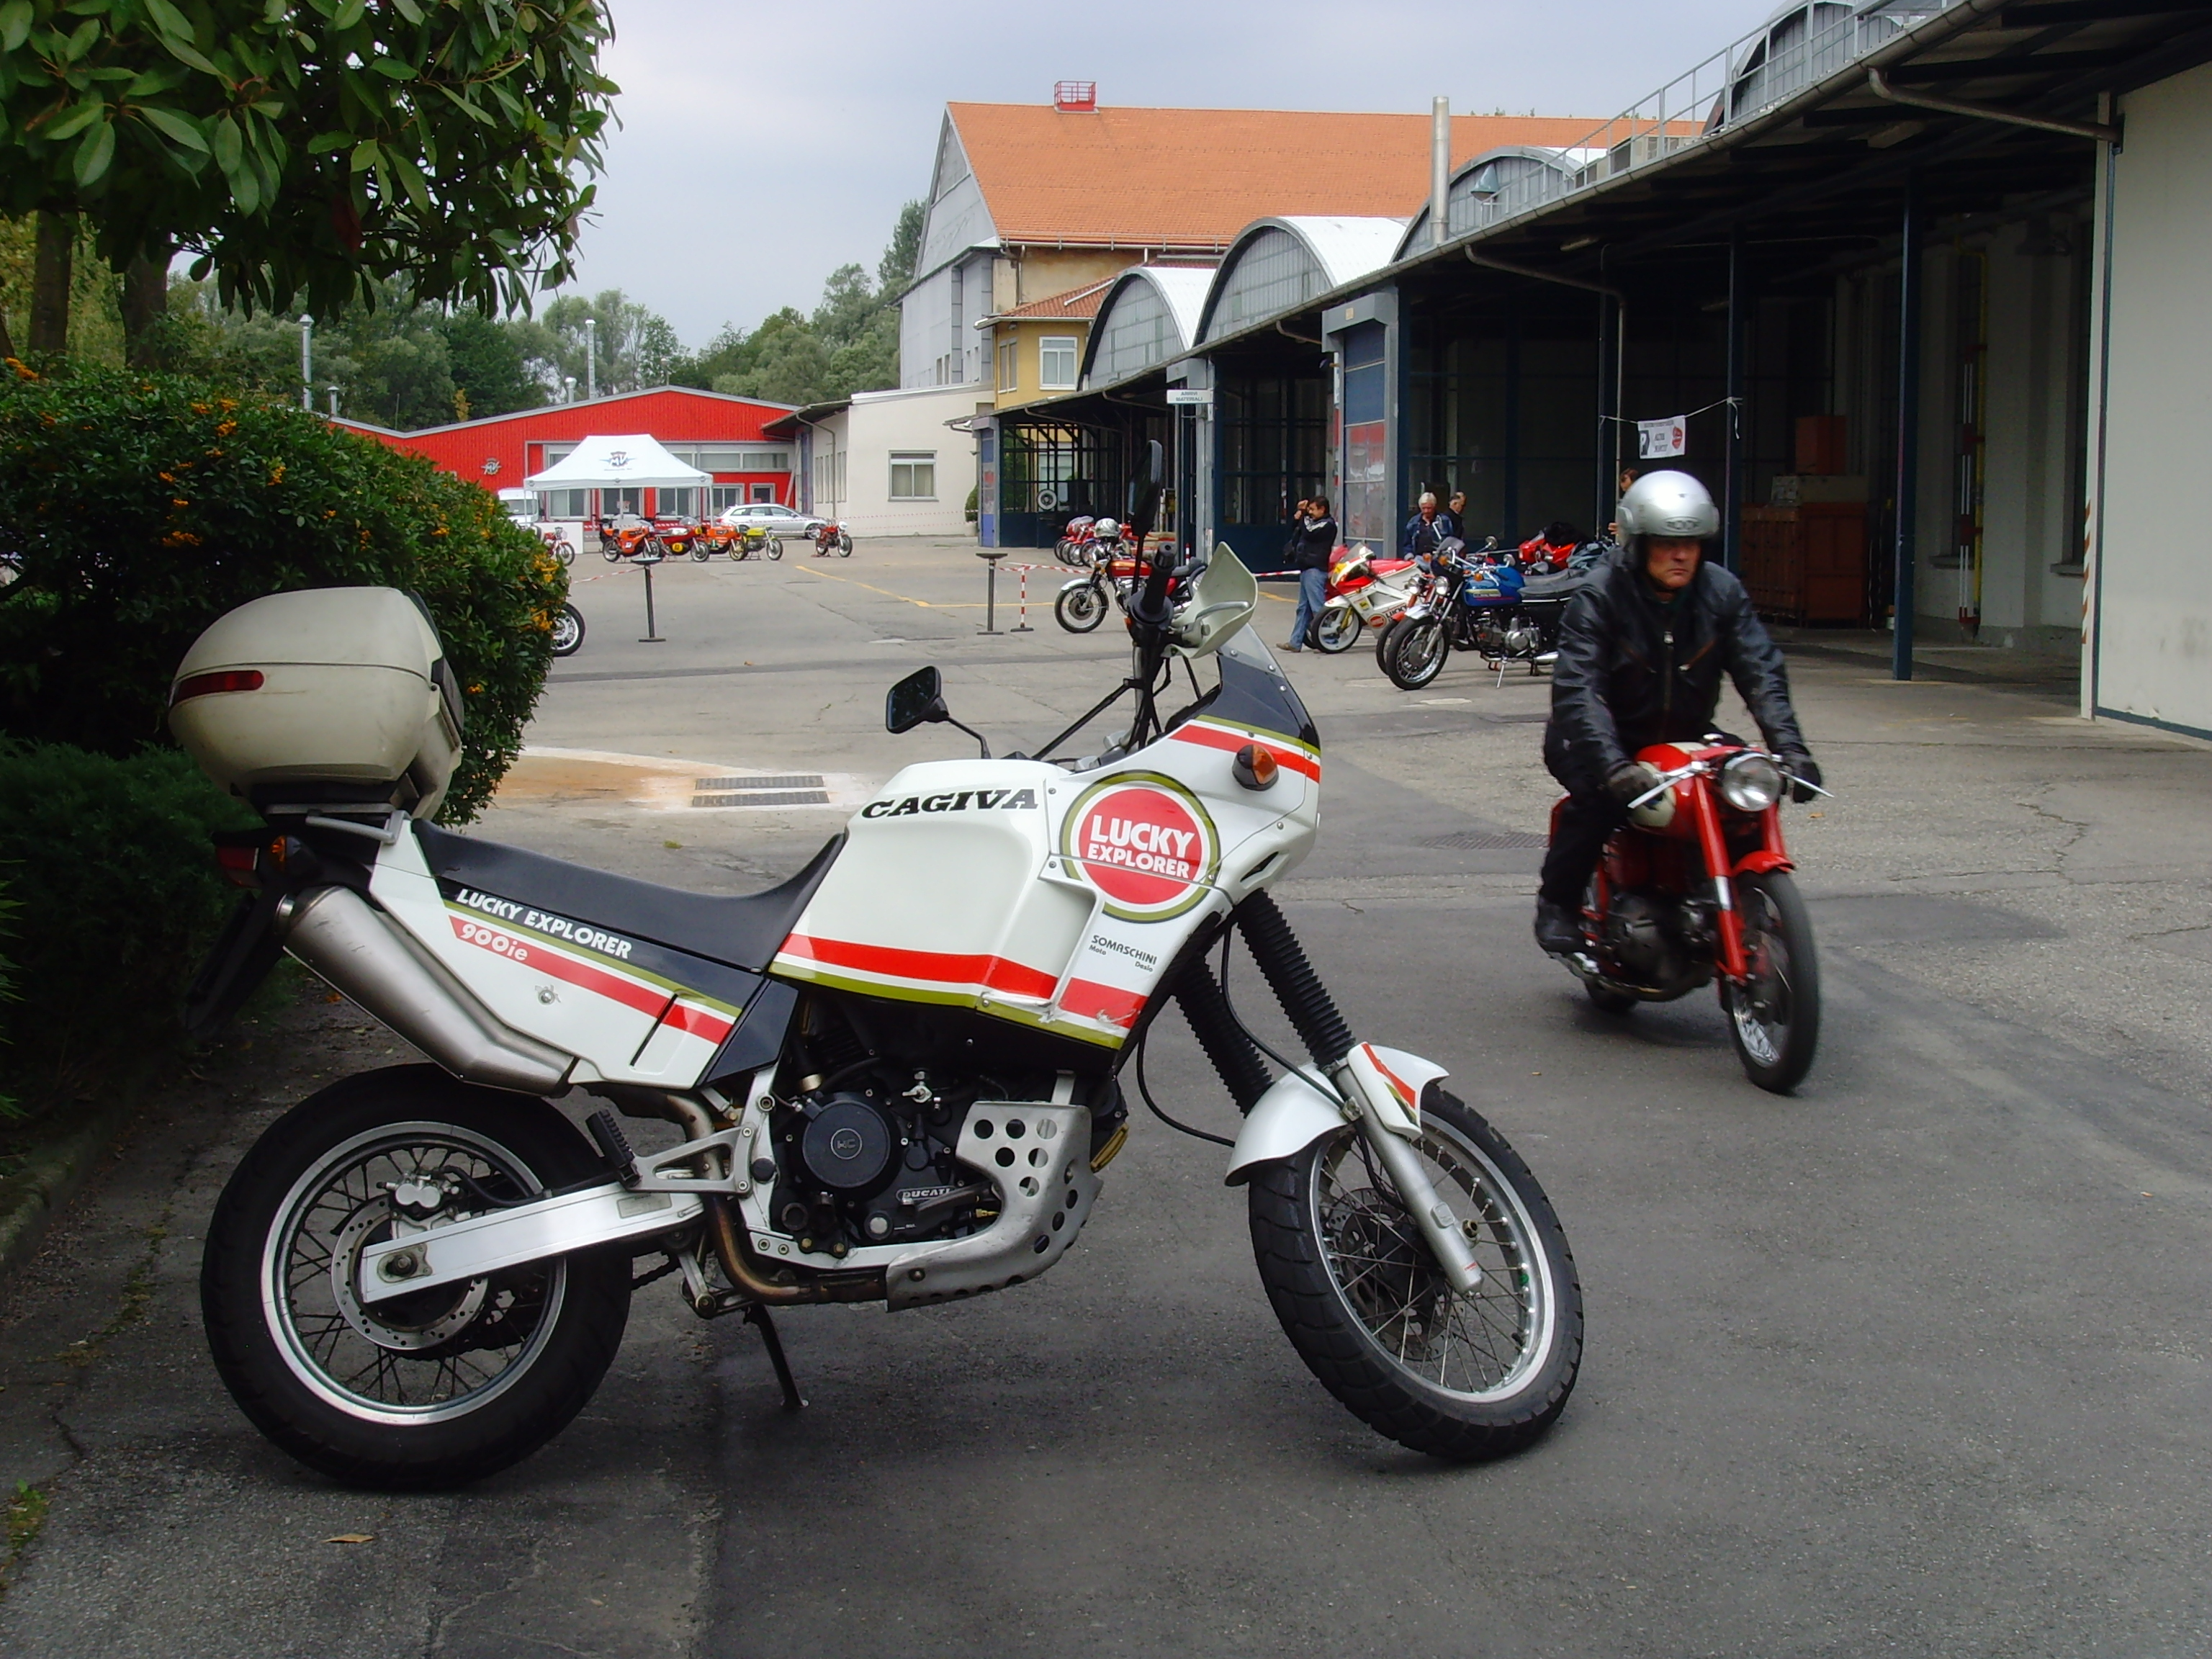 Cagiva Elefant 900 IE Lucky Strike images #69014